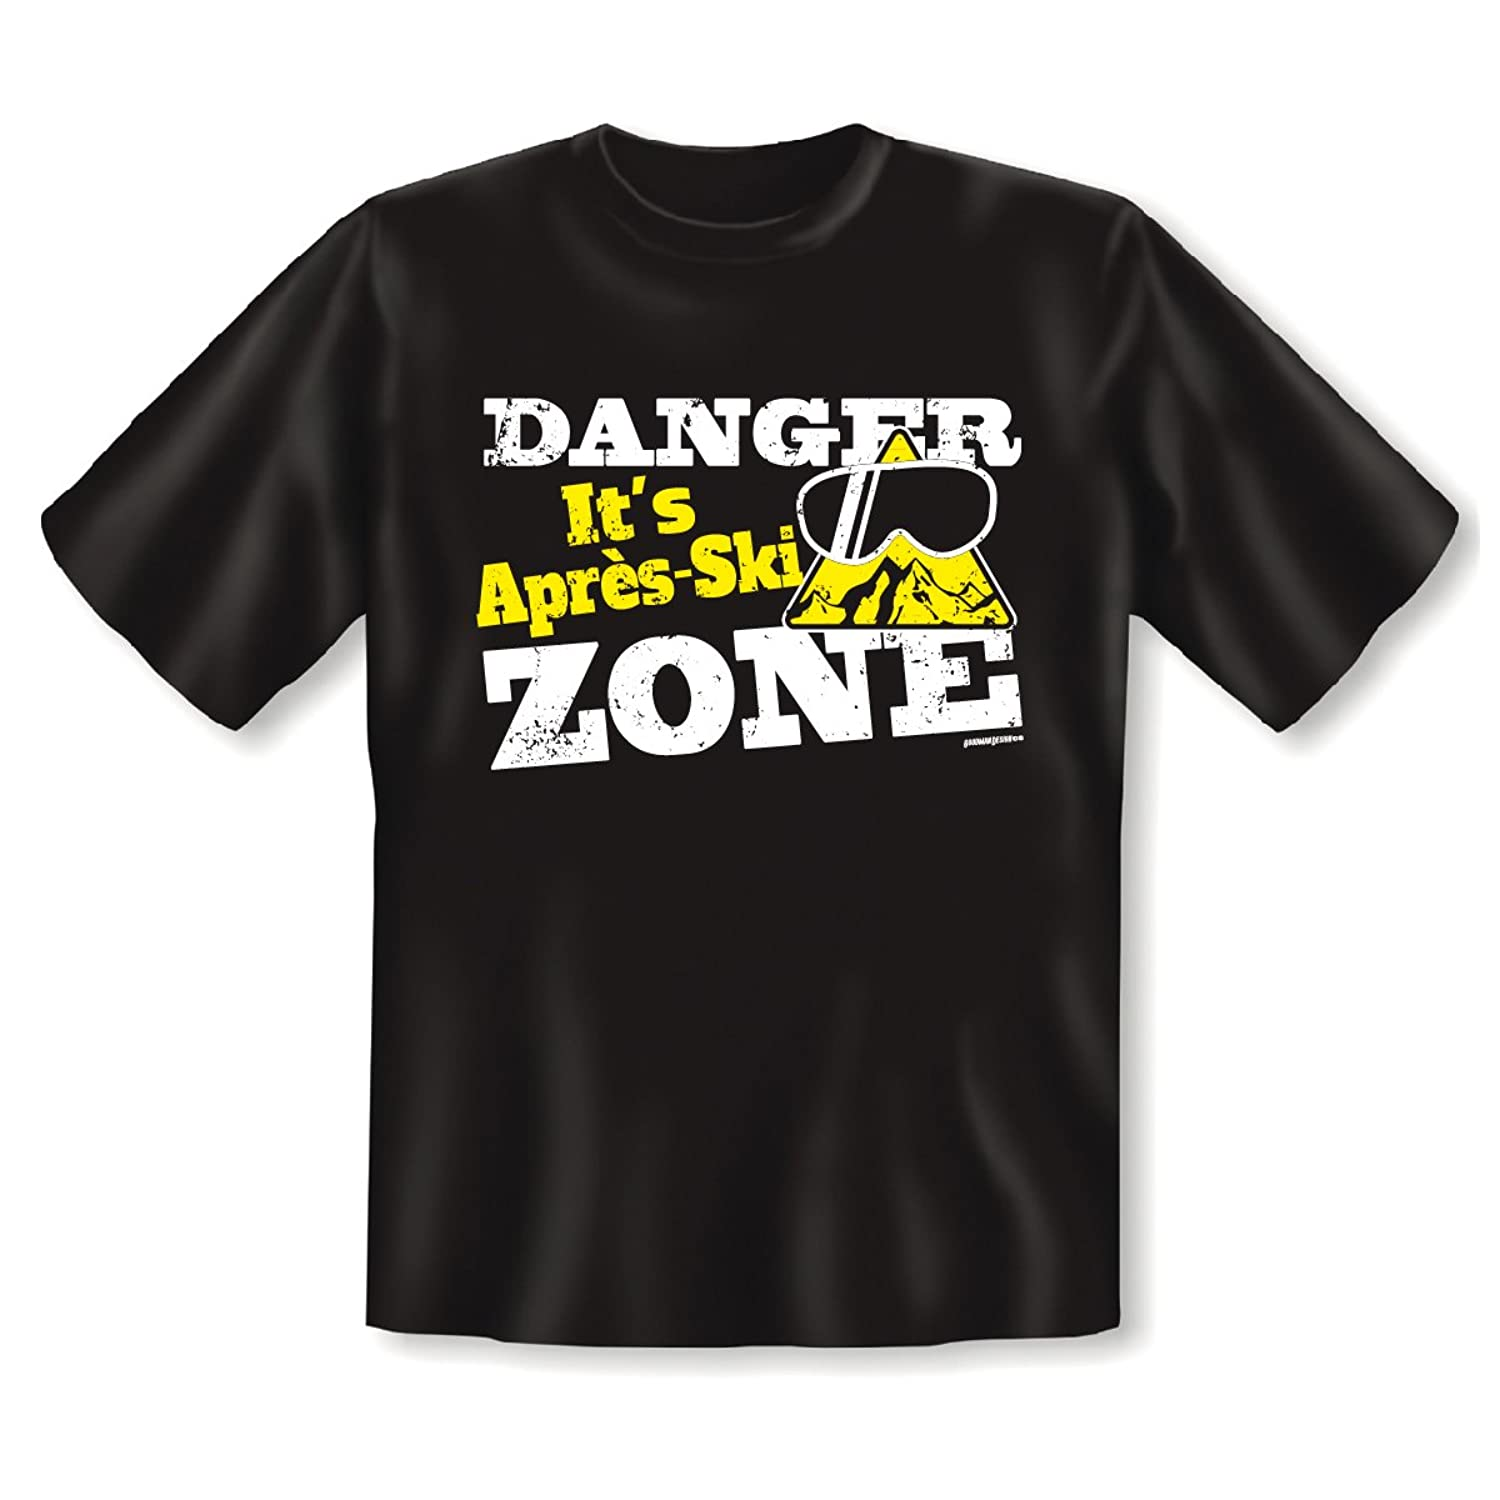 Super T - Shirt für die Skihütte : DANGER ! Its Apres Ski Zone! cooles Motiv von Goodman Design